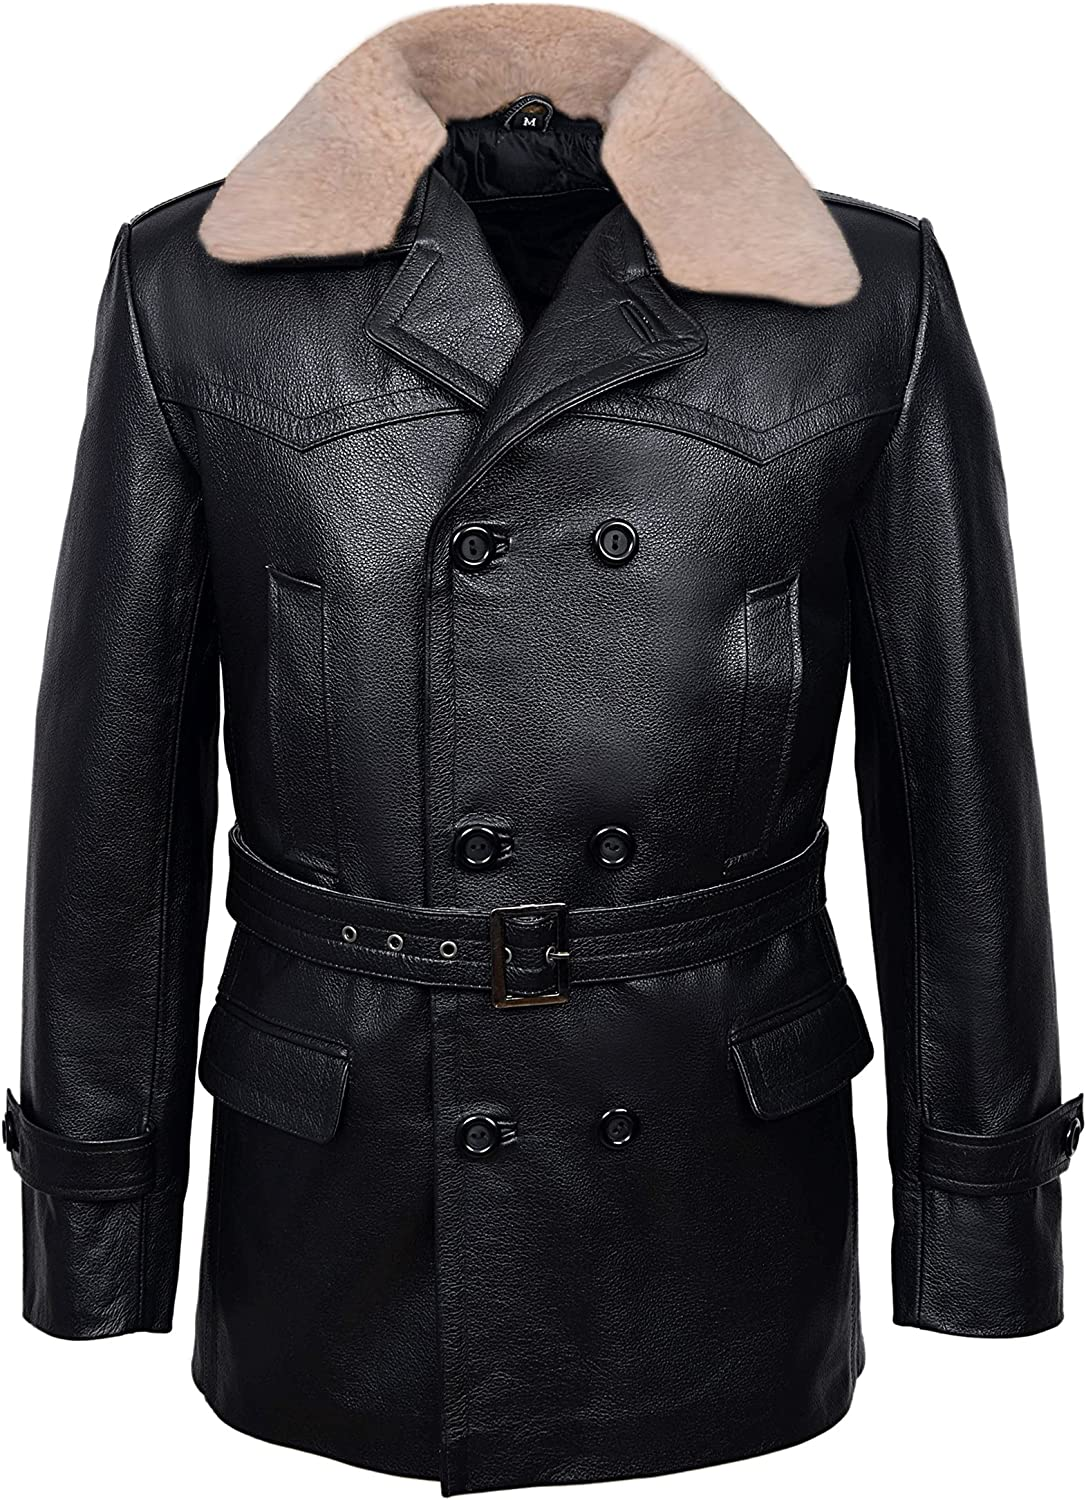 Dr Who Black Real Men's Classic Reefer Military Hide Leather Jacket